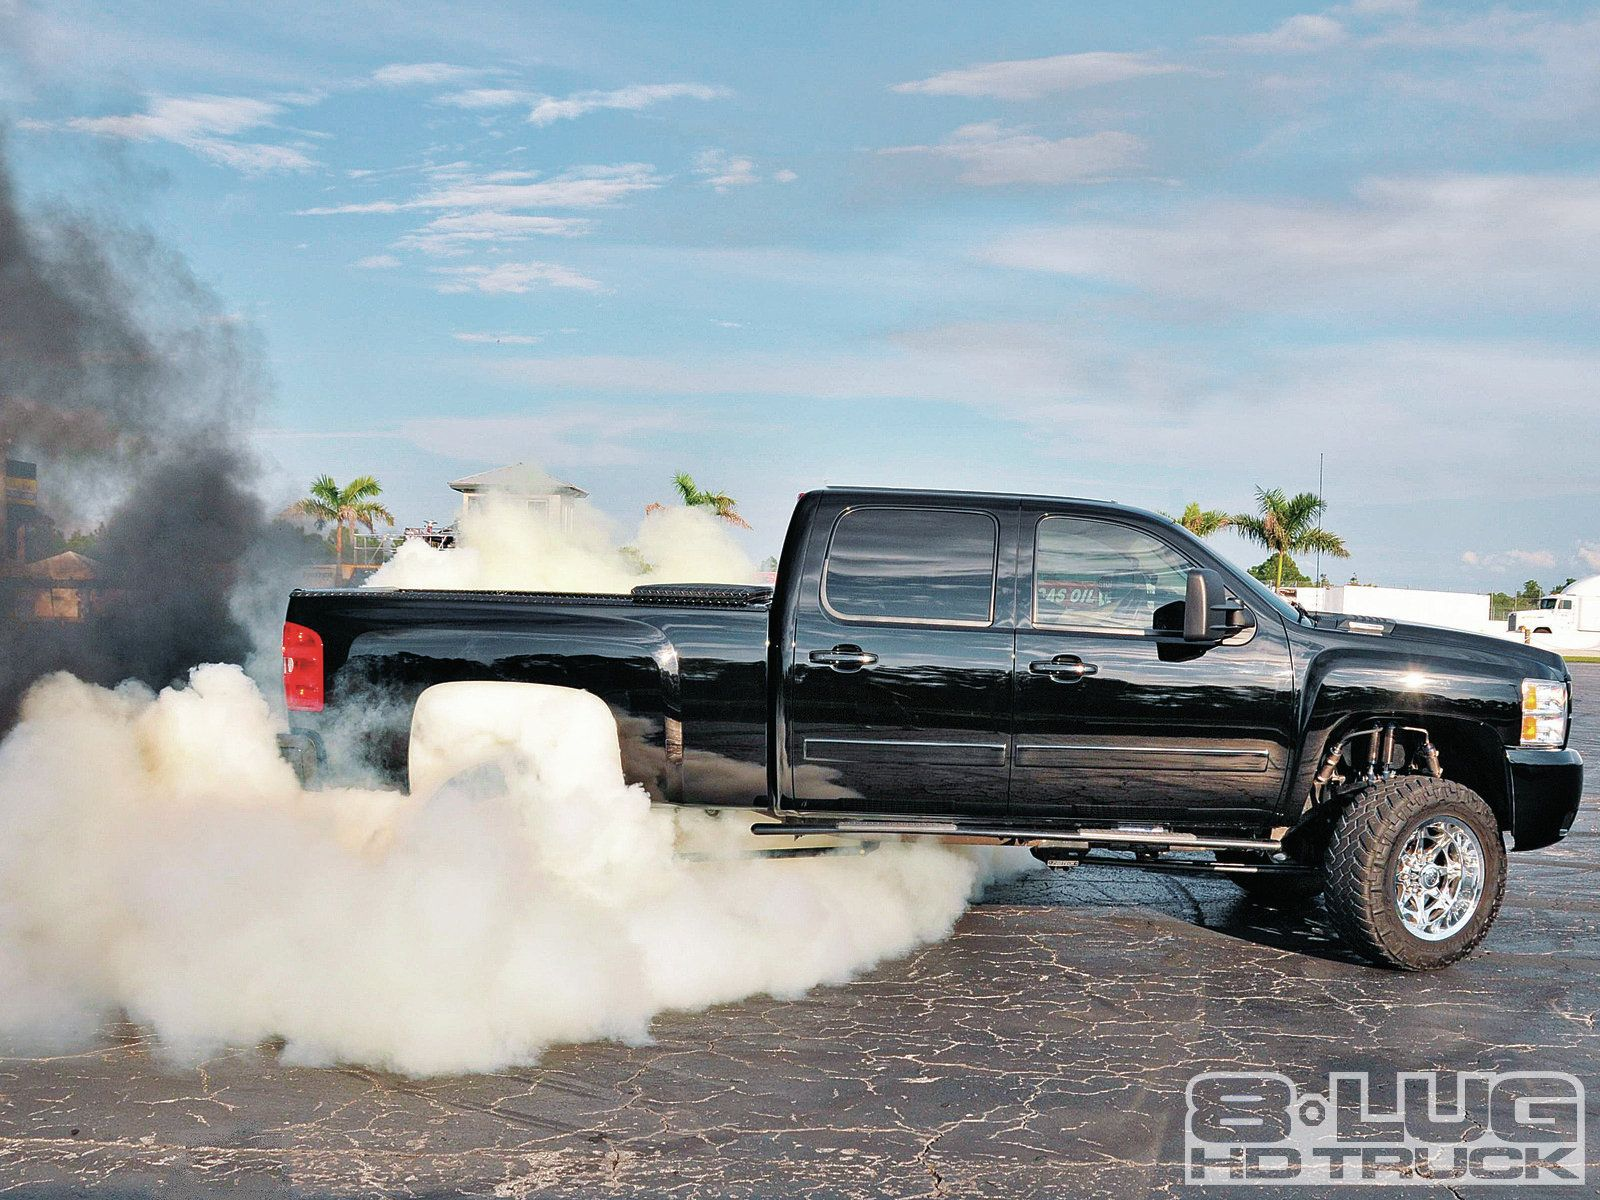 1203 8l 09 2008 chevrolet 2500 duramax ltz if speed is an addiction 2008 chevrolet 2500 duramax ltz burnout jpg 1 600 1 200 pixels chevy trucks